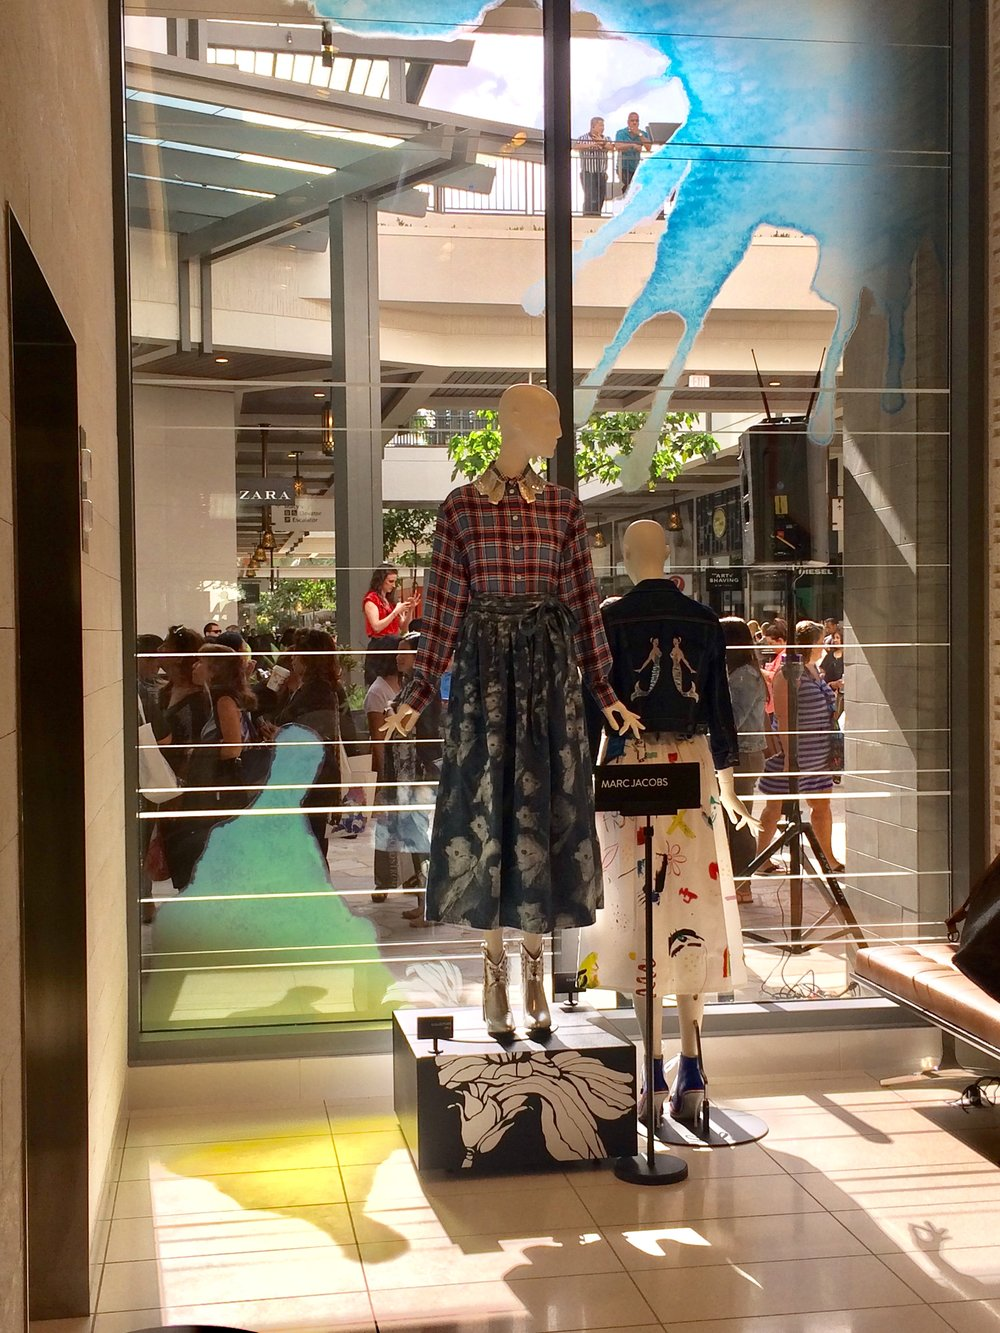 Nordstrom Ala Moana (Honolulu HI) - Marc Jacobs window